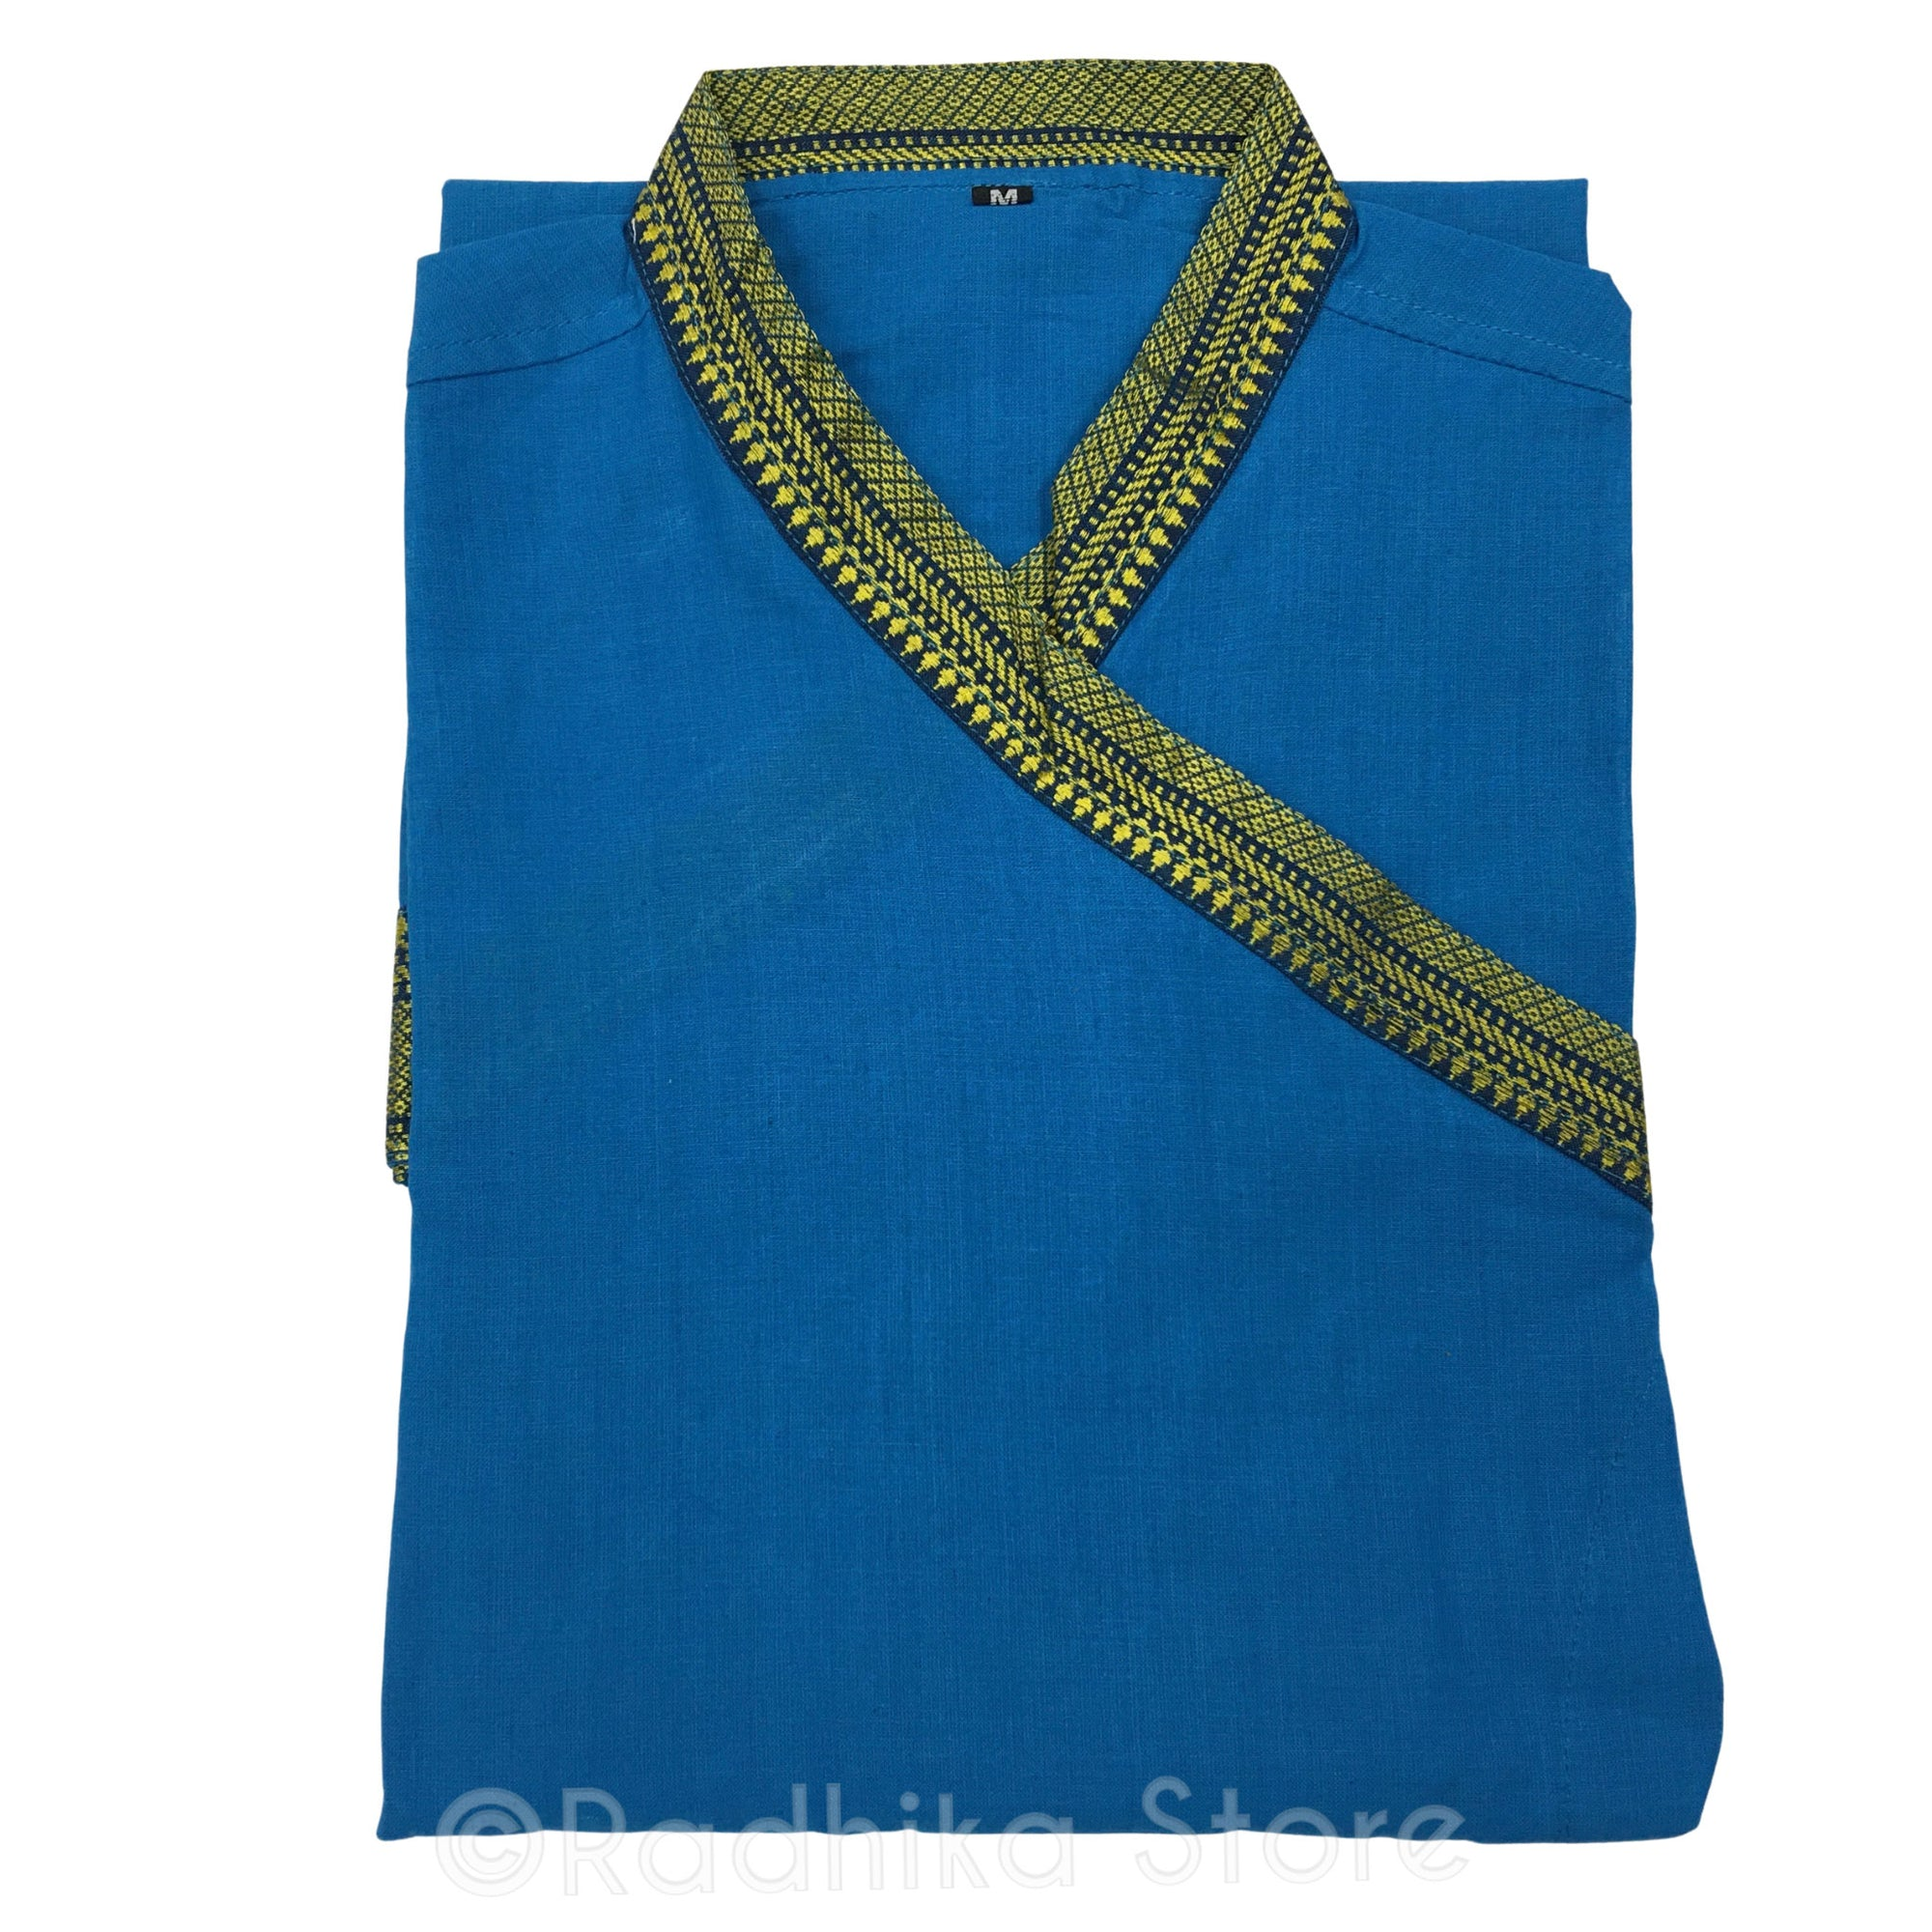 Festival Blue Color - Bundy Style Kurta - Cotton - Short Sleeve